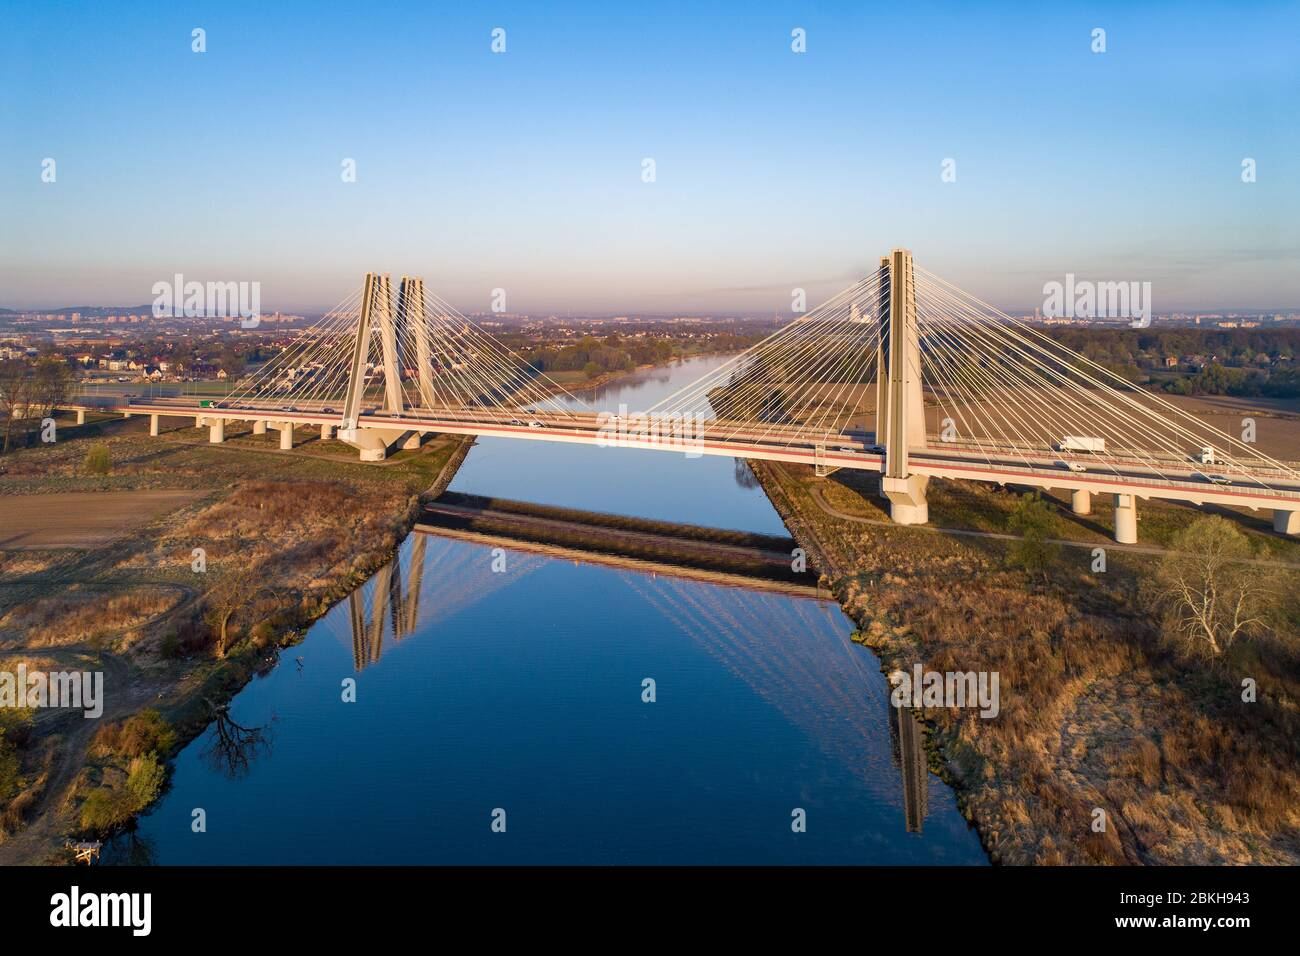 New modern double cable-stayed bridge with wide three-lane roads over Vistula River in Krakow, Poland, and its reflection in water at sunrise. Stock Photo